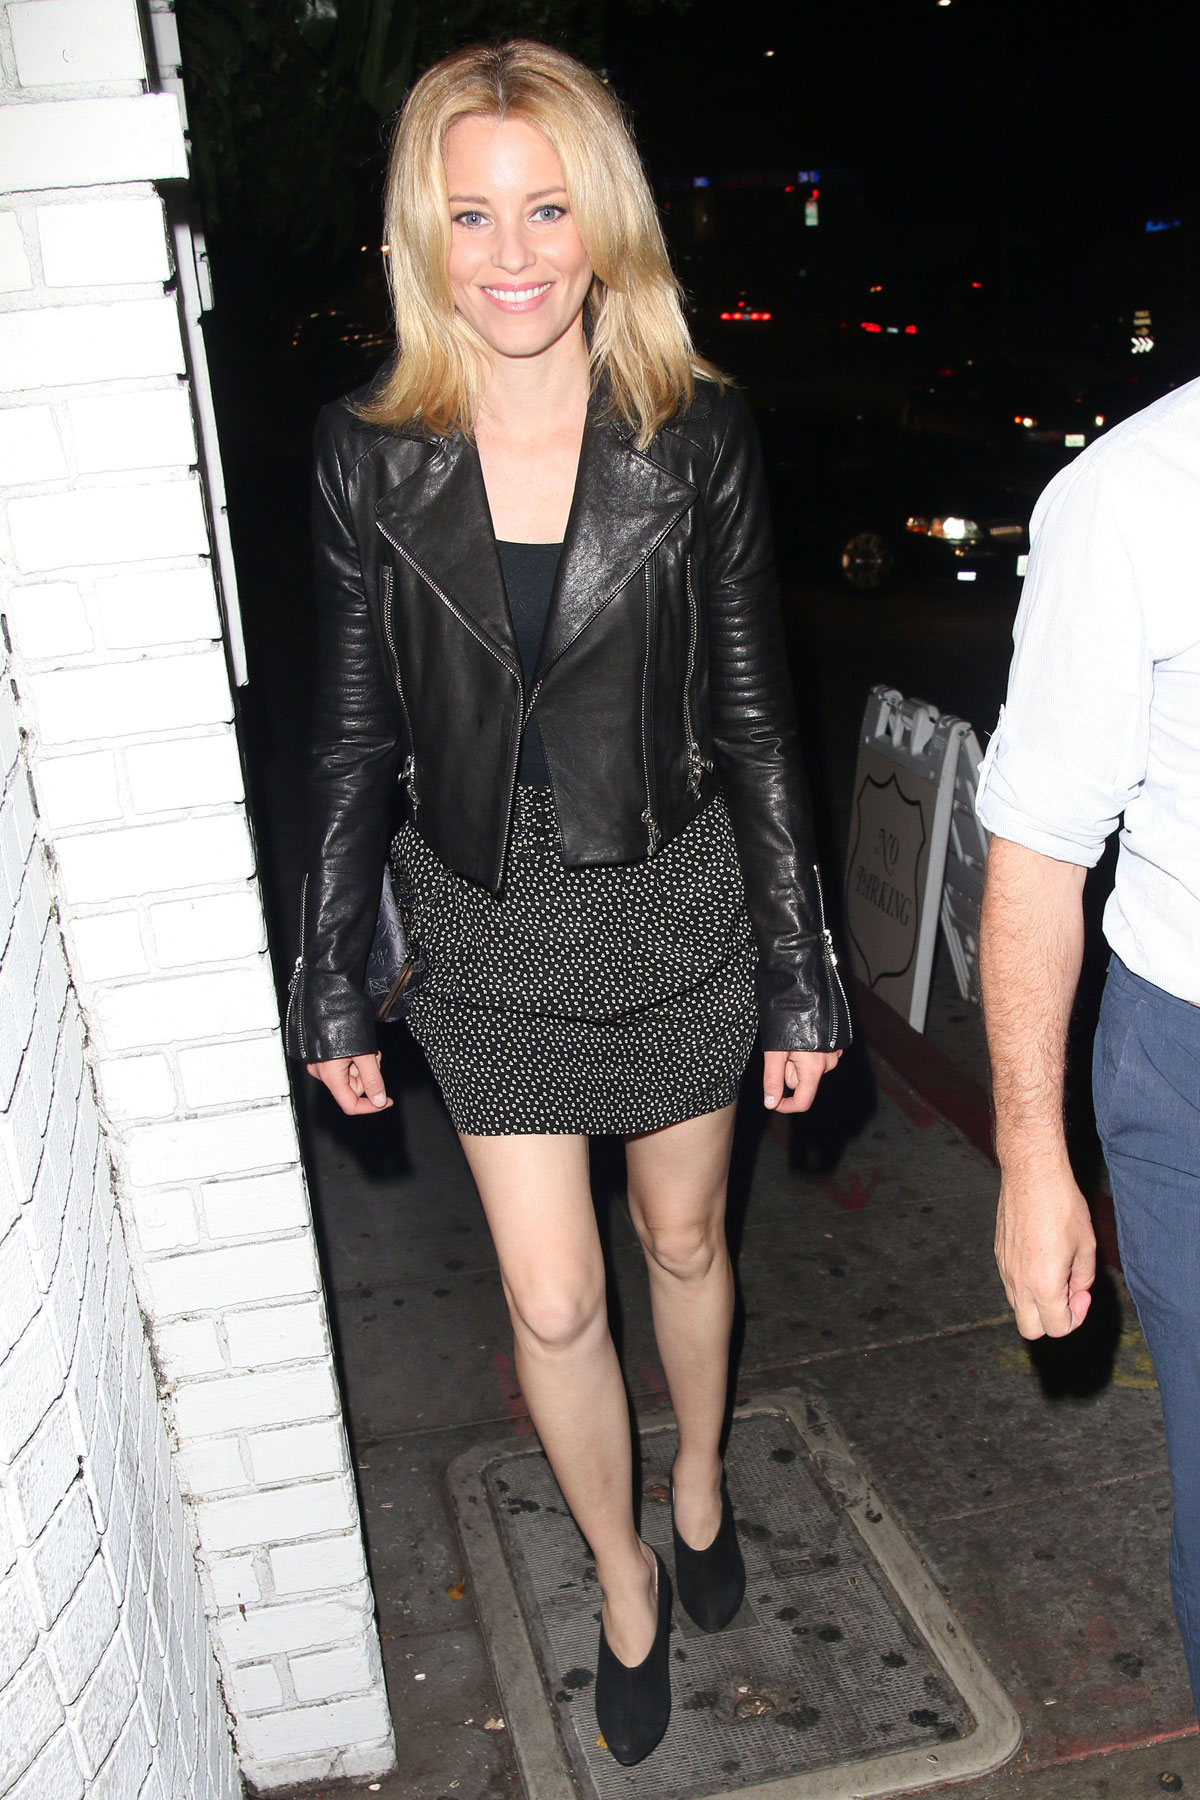 Elizabeth Banks at Chateau Marmont